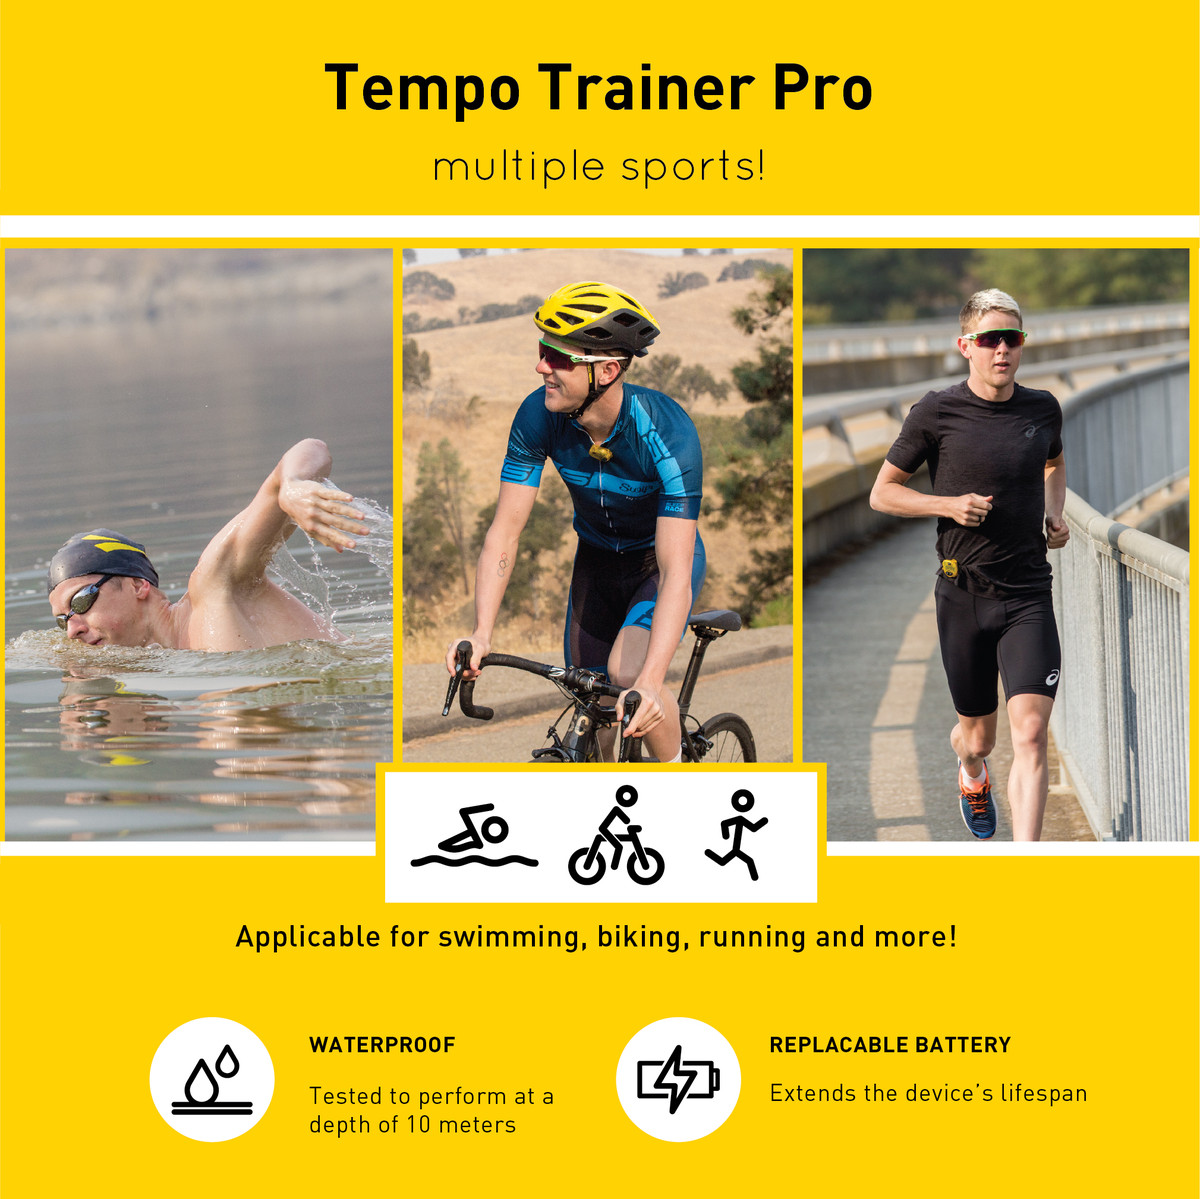 Finis tempo trainer pro best price on the internet!